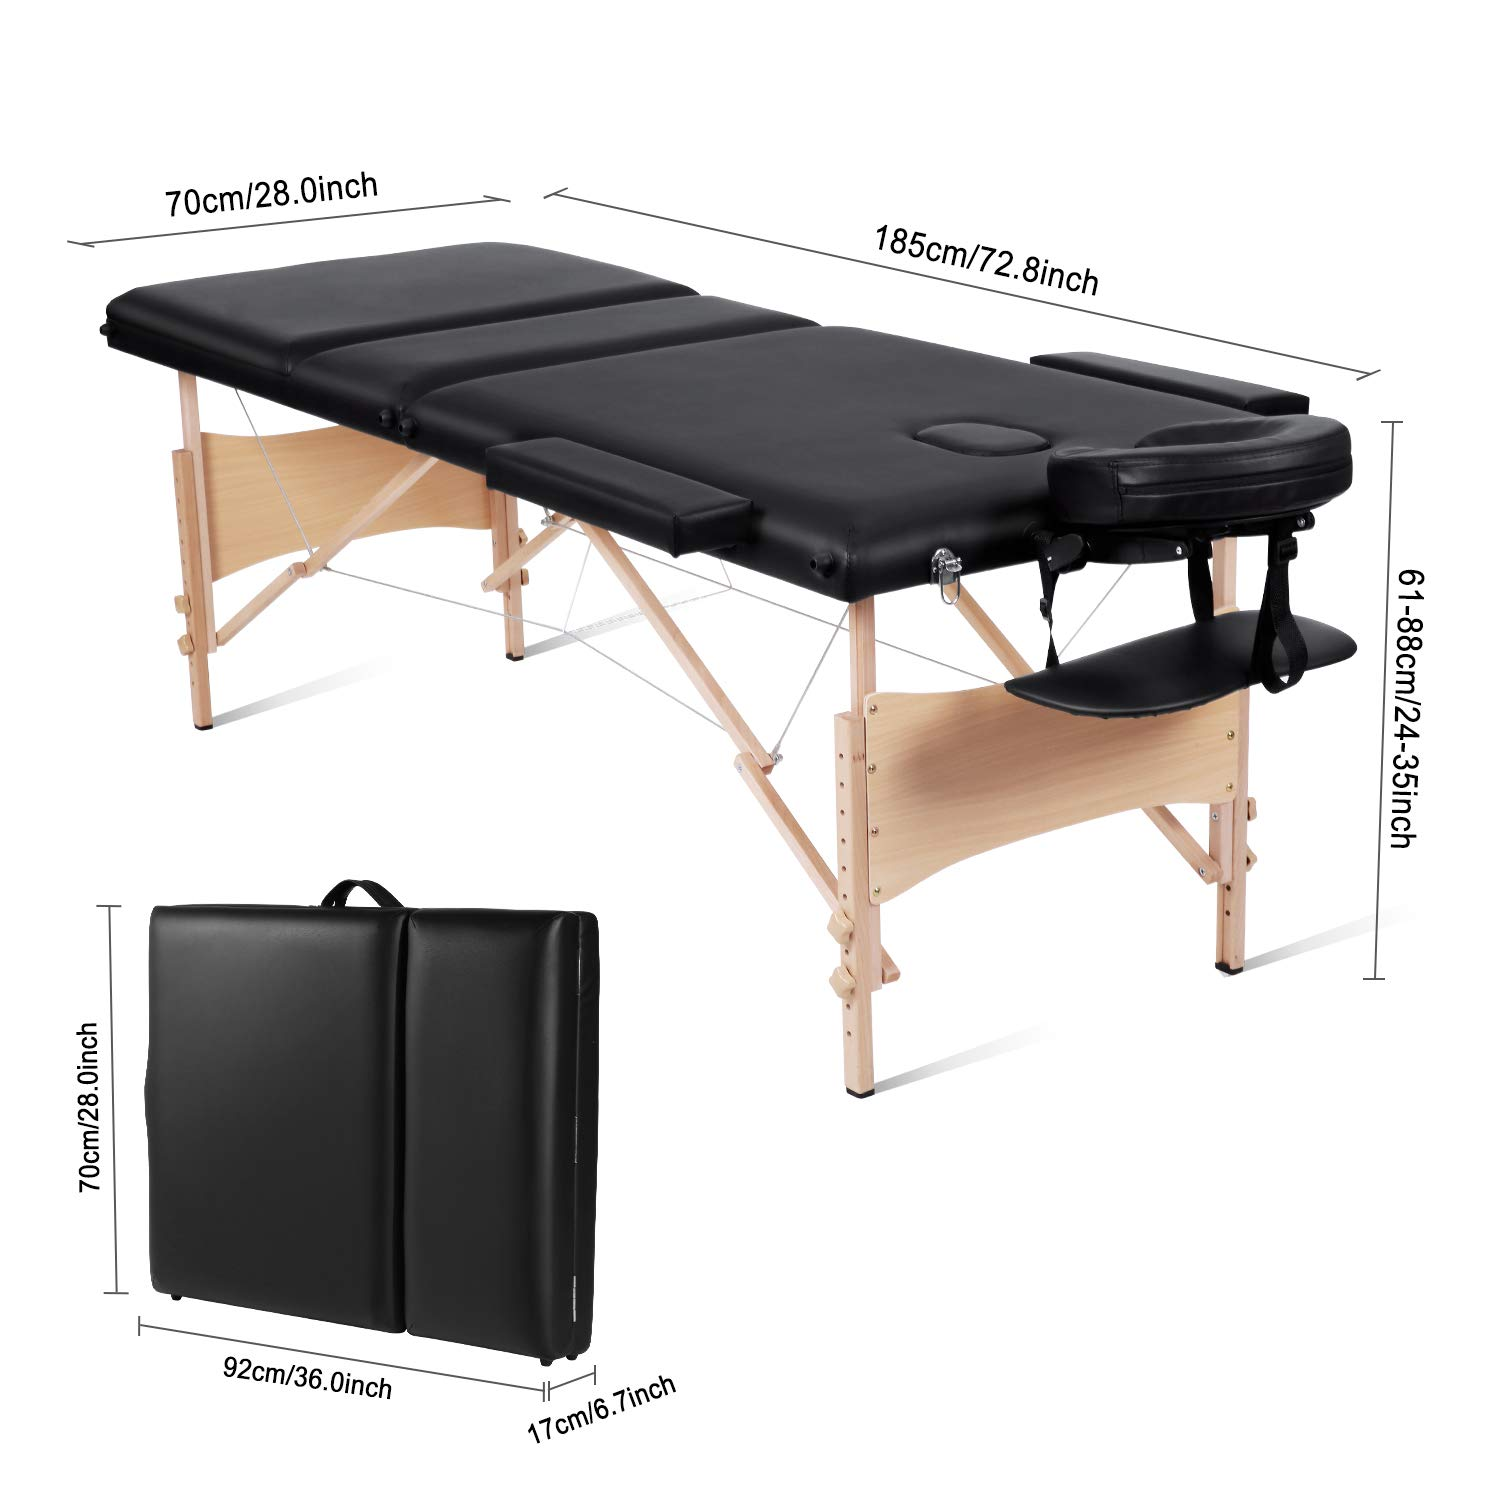 MaxKare Portable Massage Table 84'' With Carrying Bag & Accessories, 3 Fold, Extra Wide, Black